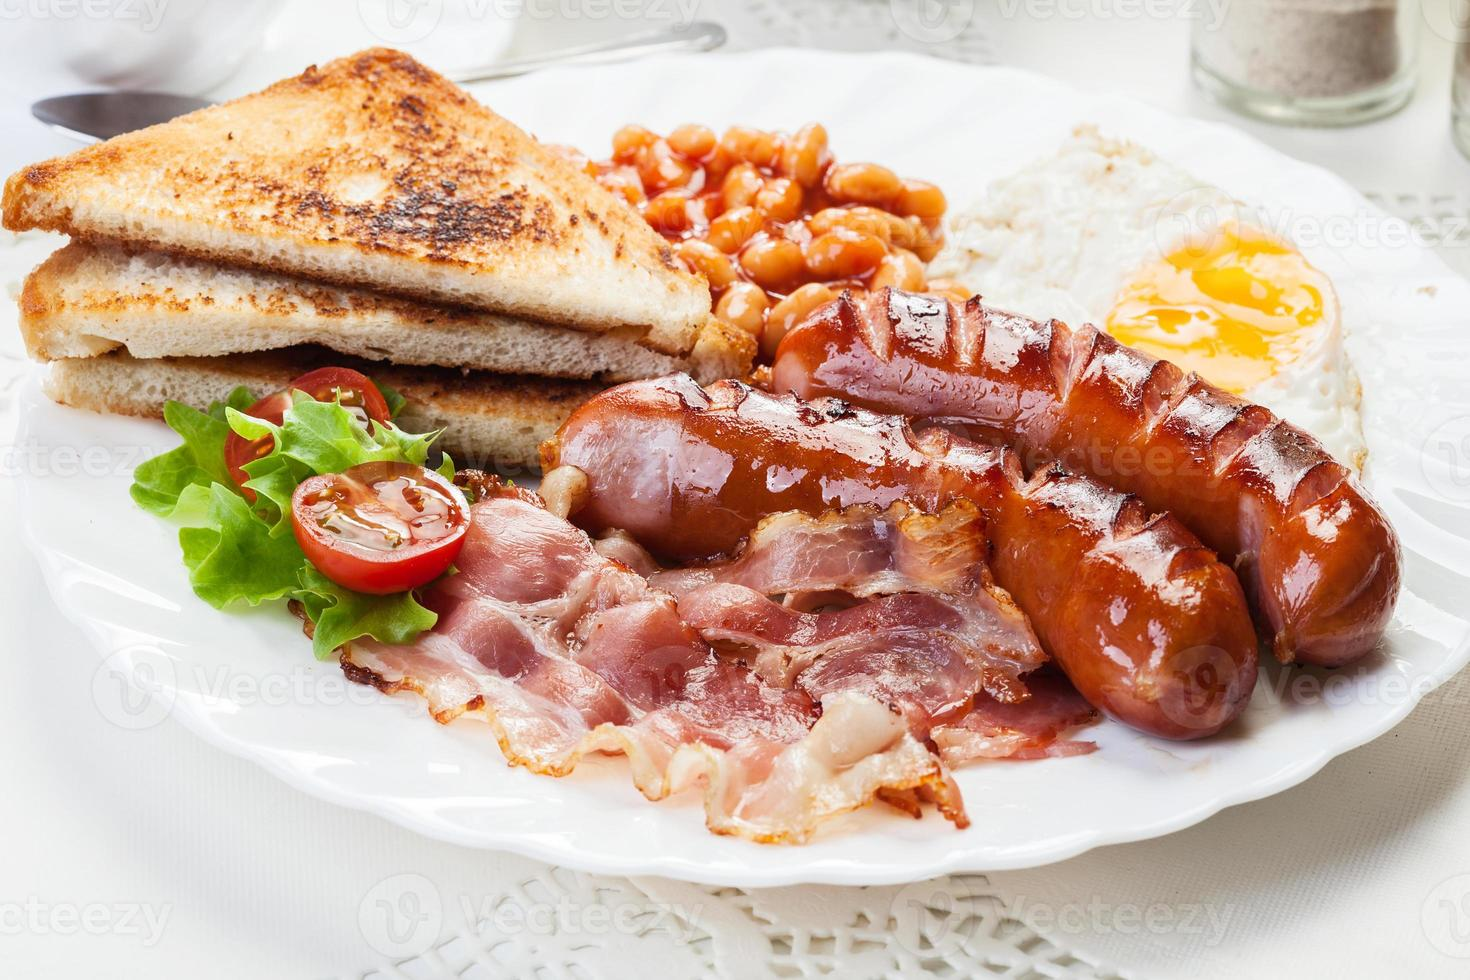 Full English breakfast with bacon, sausage, egg and baked beans photo